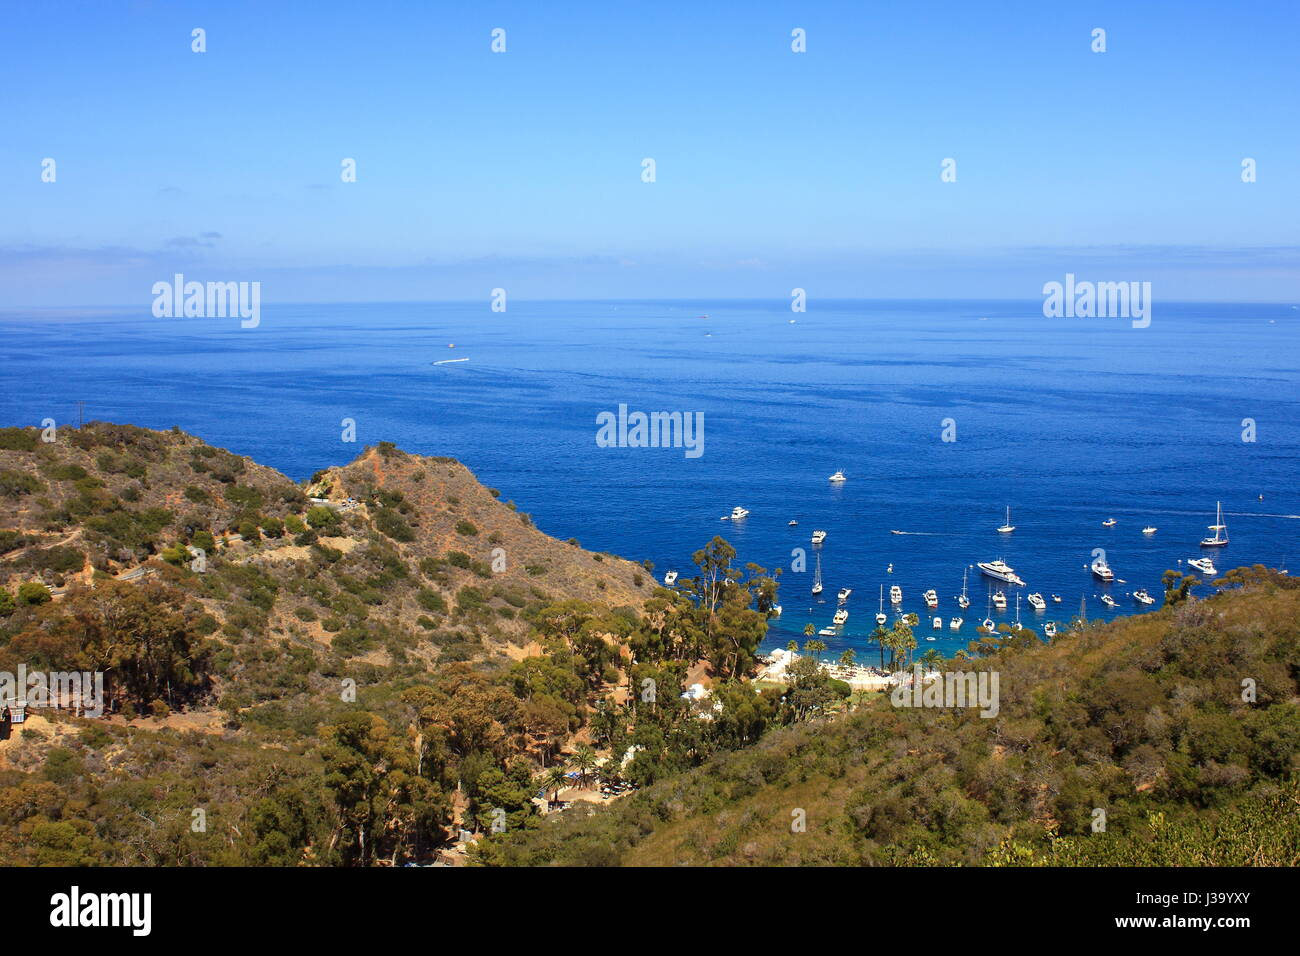 A view of Sunny and Peaceful afternoon at Catalina island - Stock Image